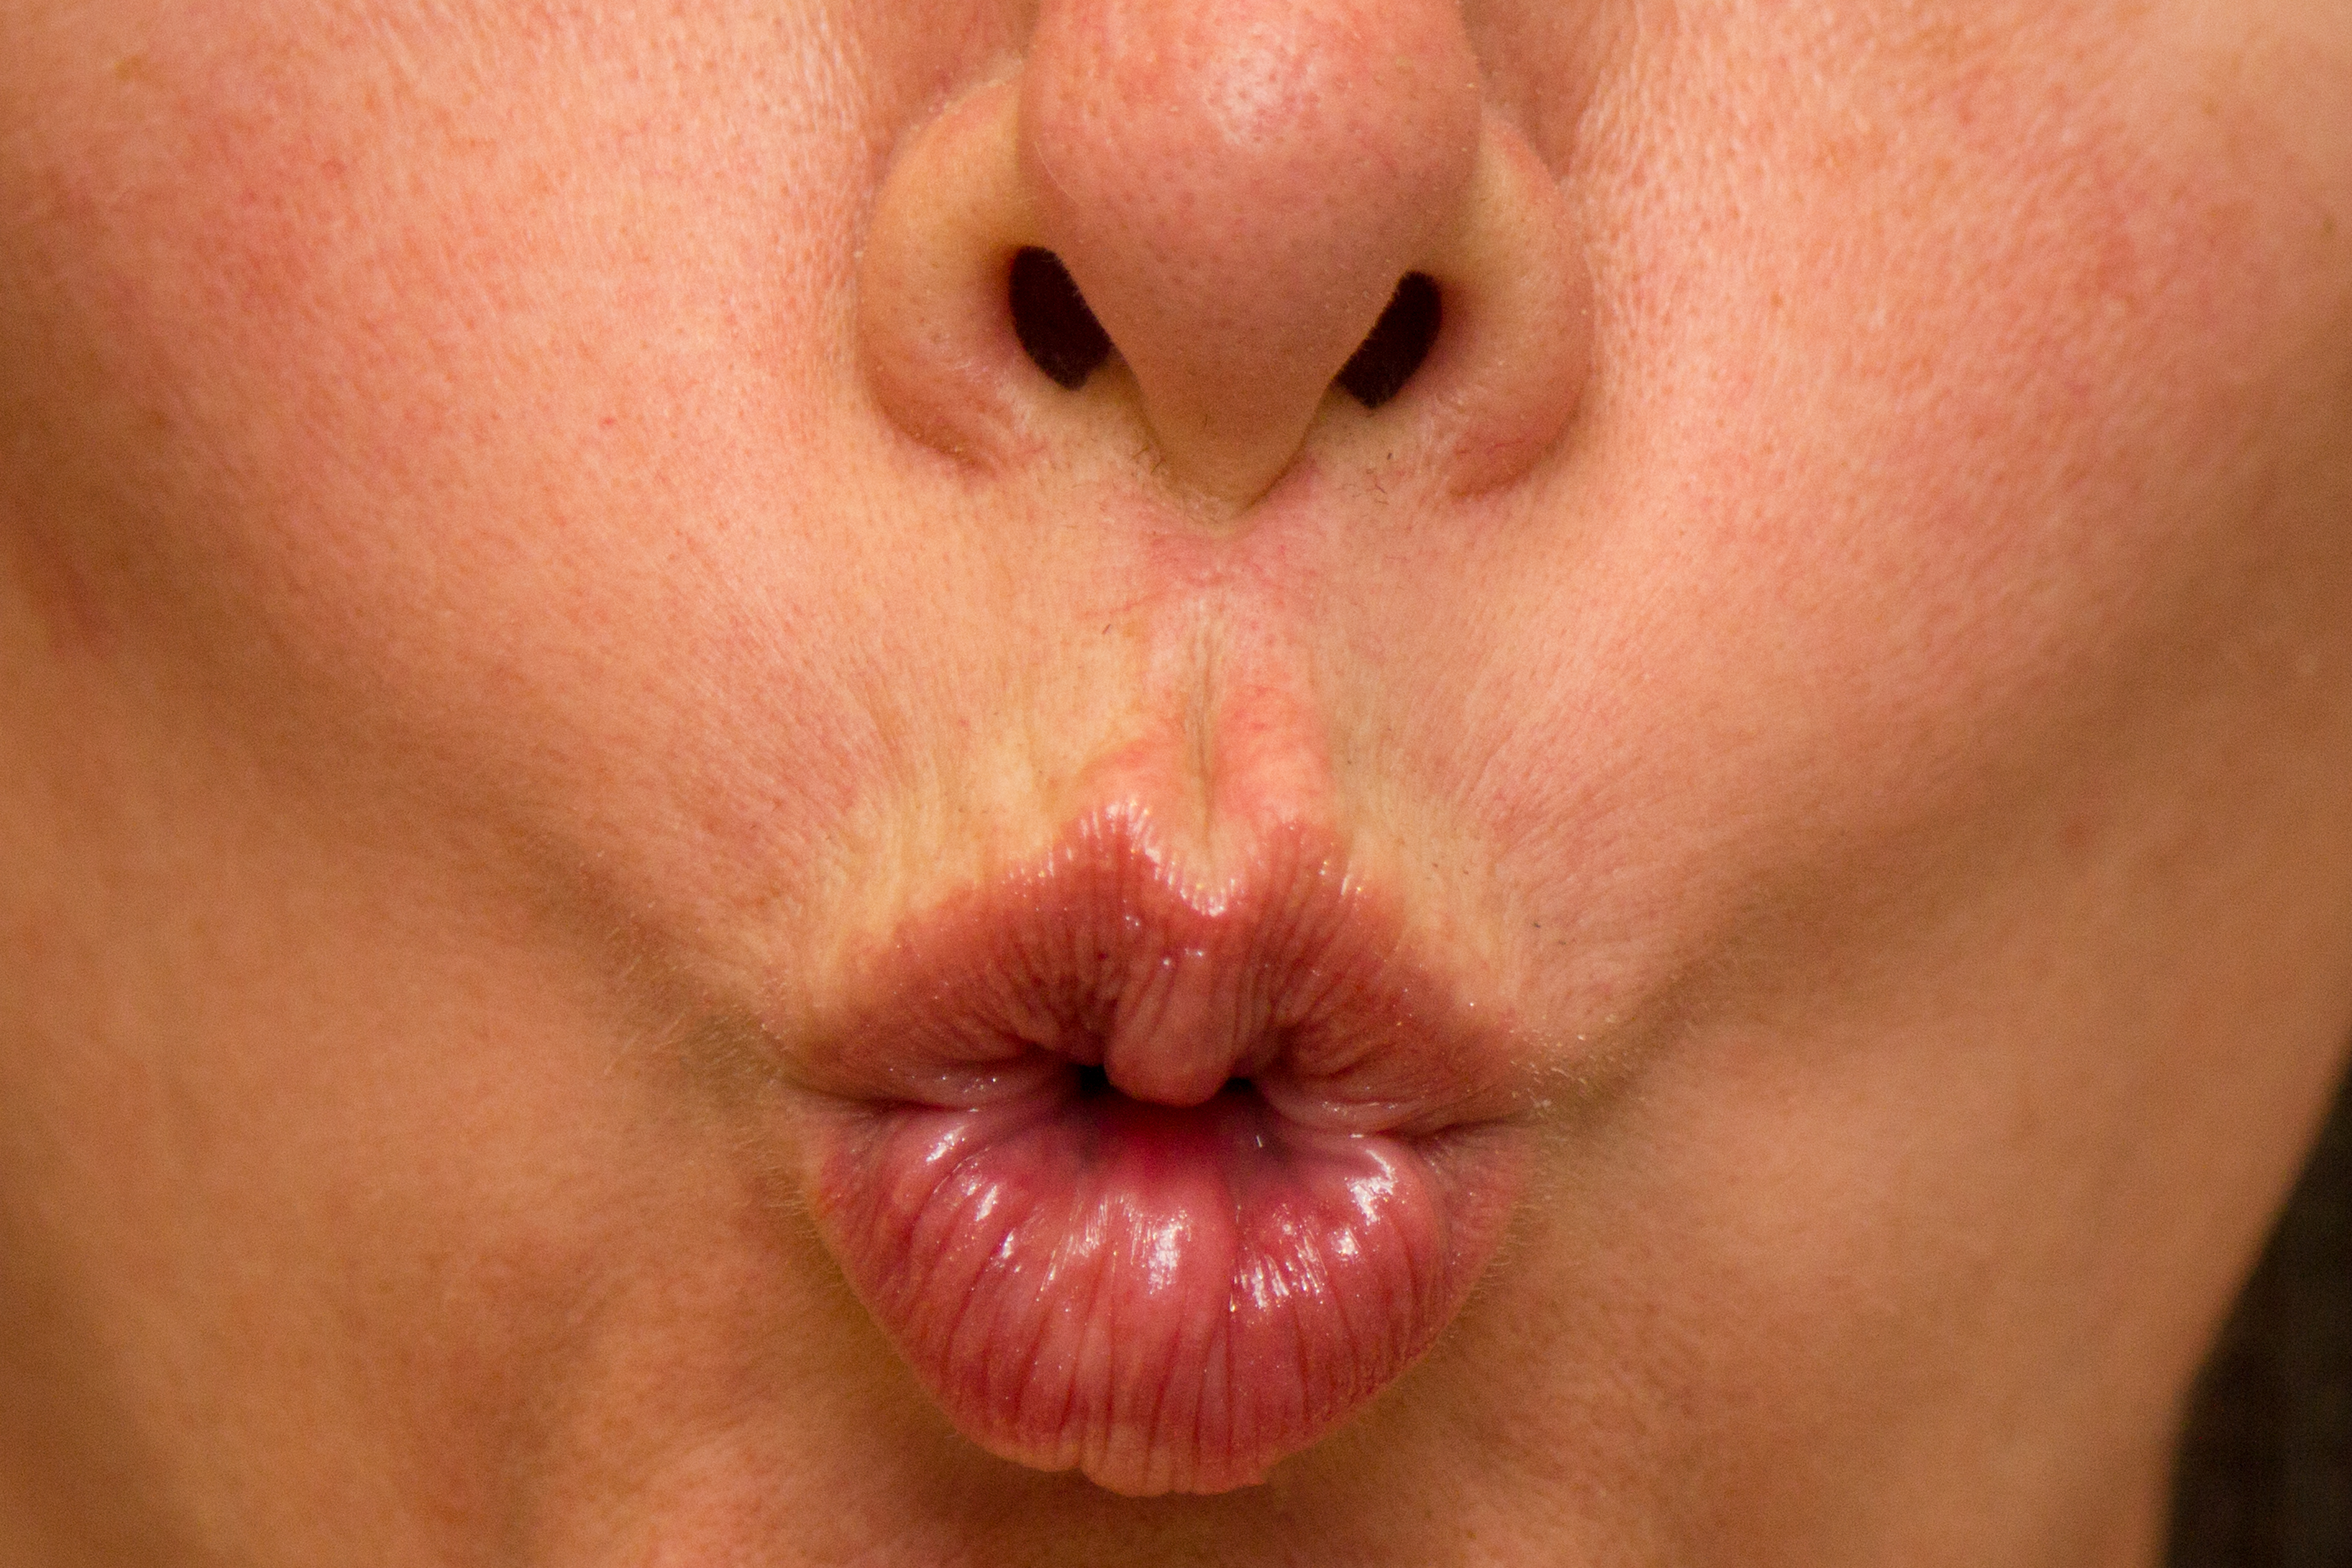 Facial Exercises For The Lips